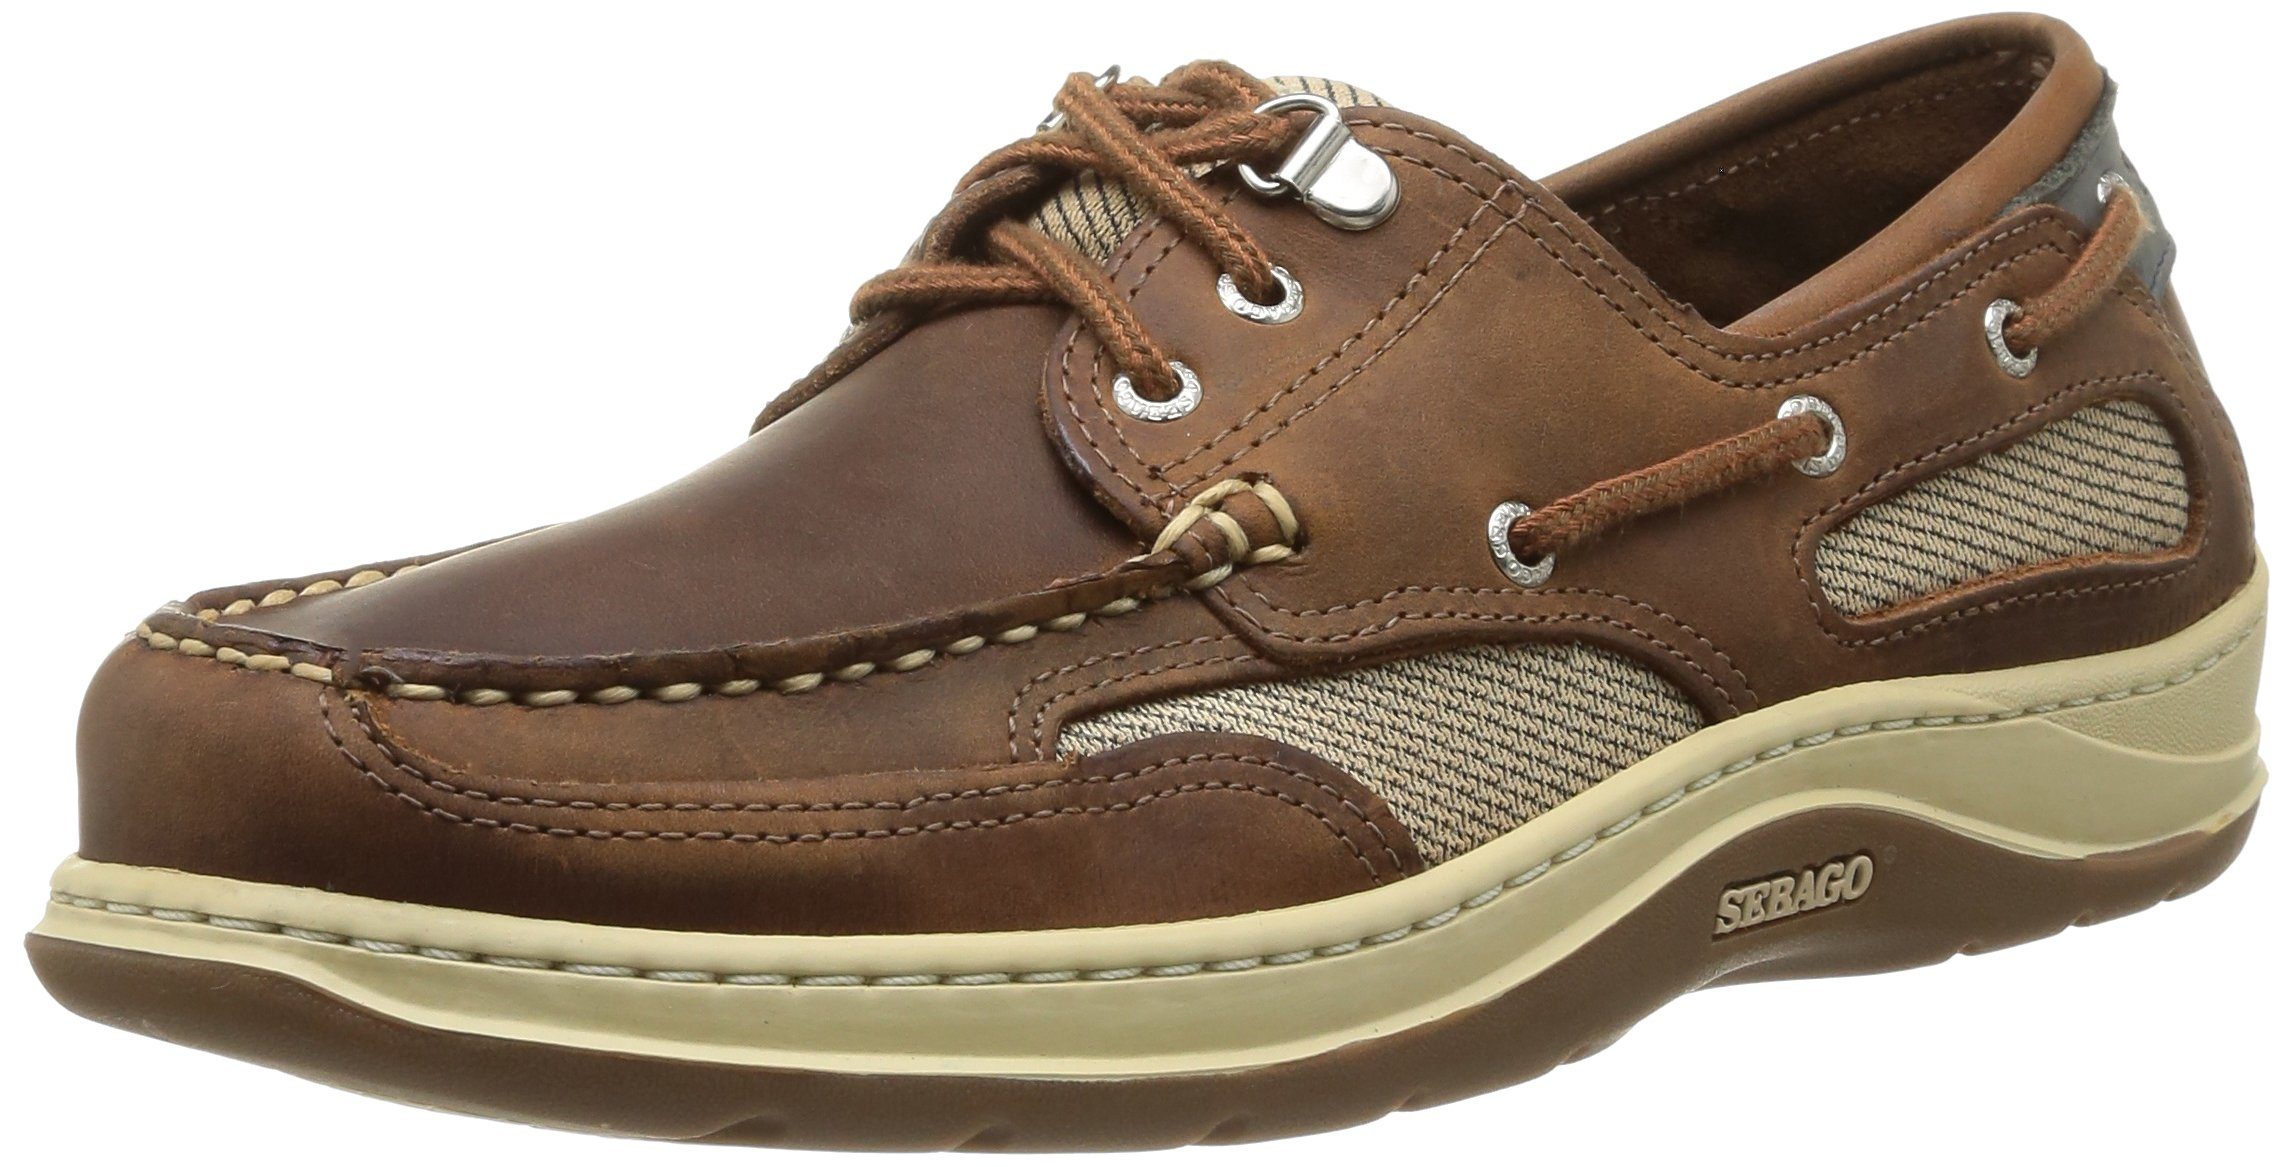 Homme Eu Sebago Leather41 Clovehitch IiChaussures 5 Marronwalnut Bateau kPXTOuZi